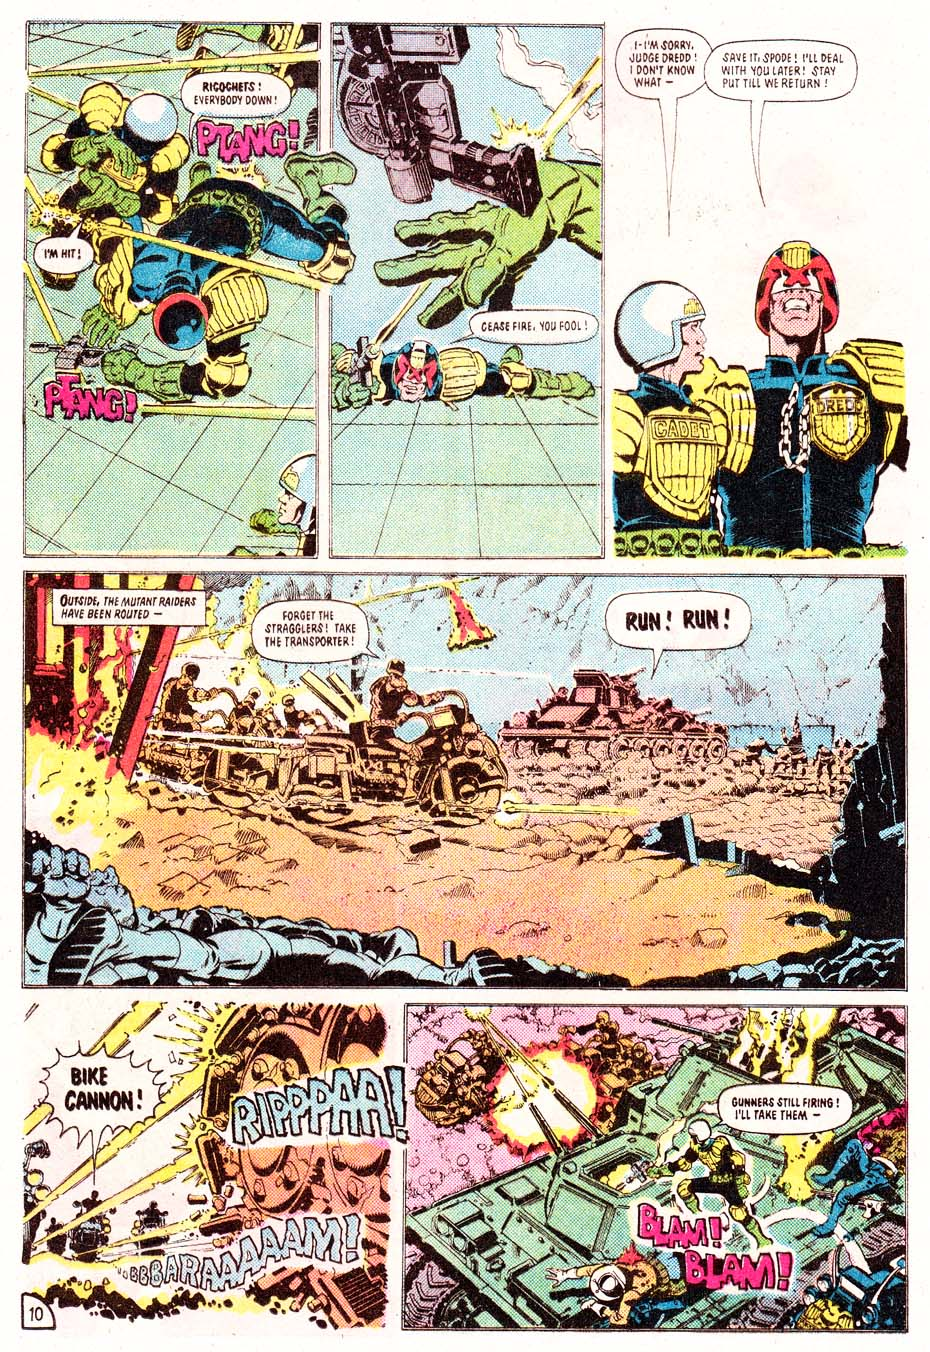 Judge Dredd: The Complete Case Files issue 5.2 - Page 1